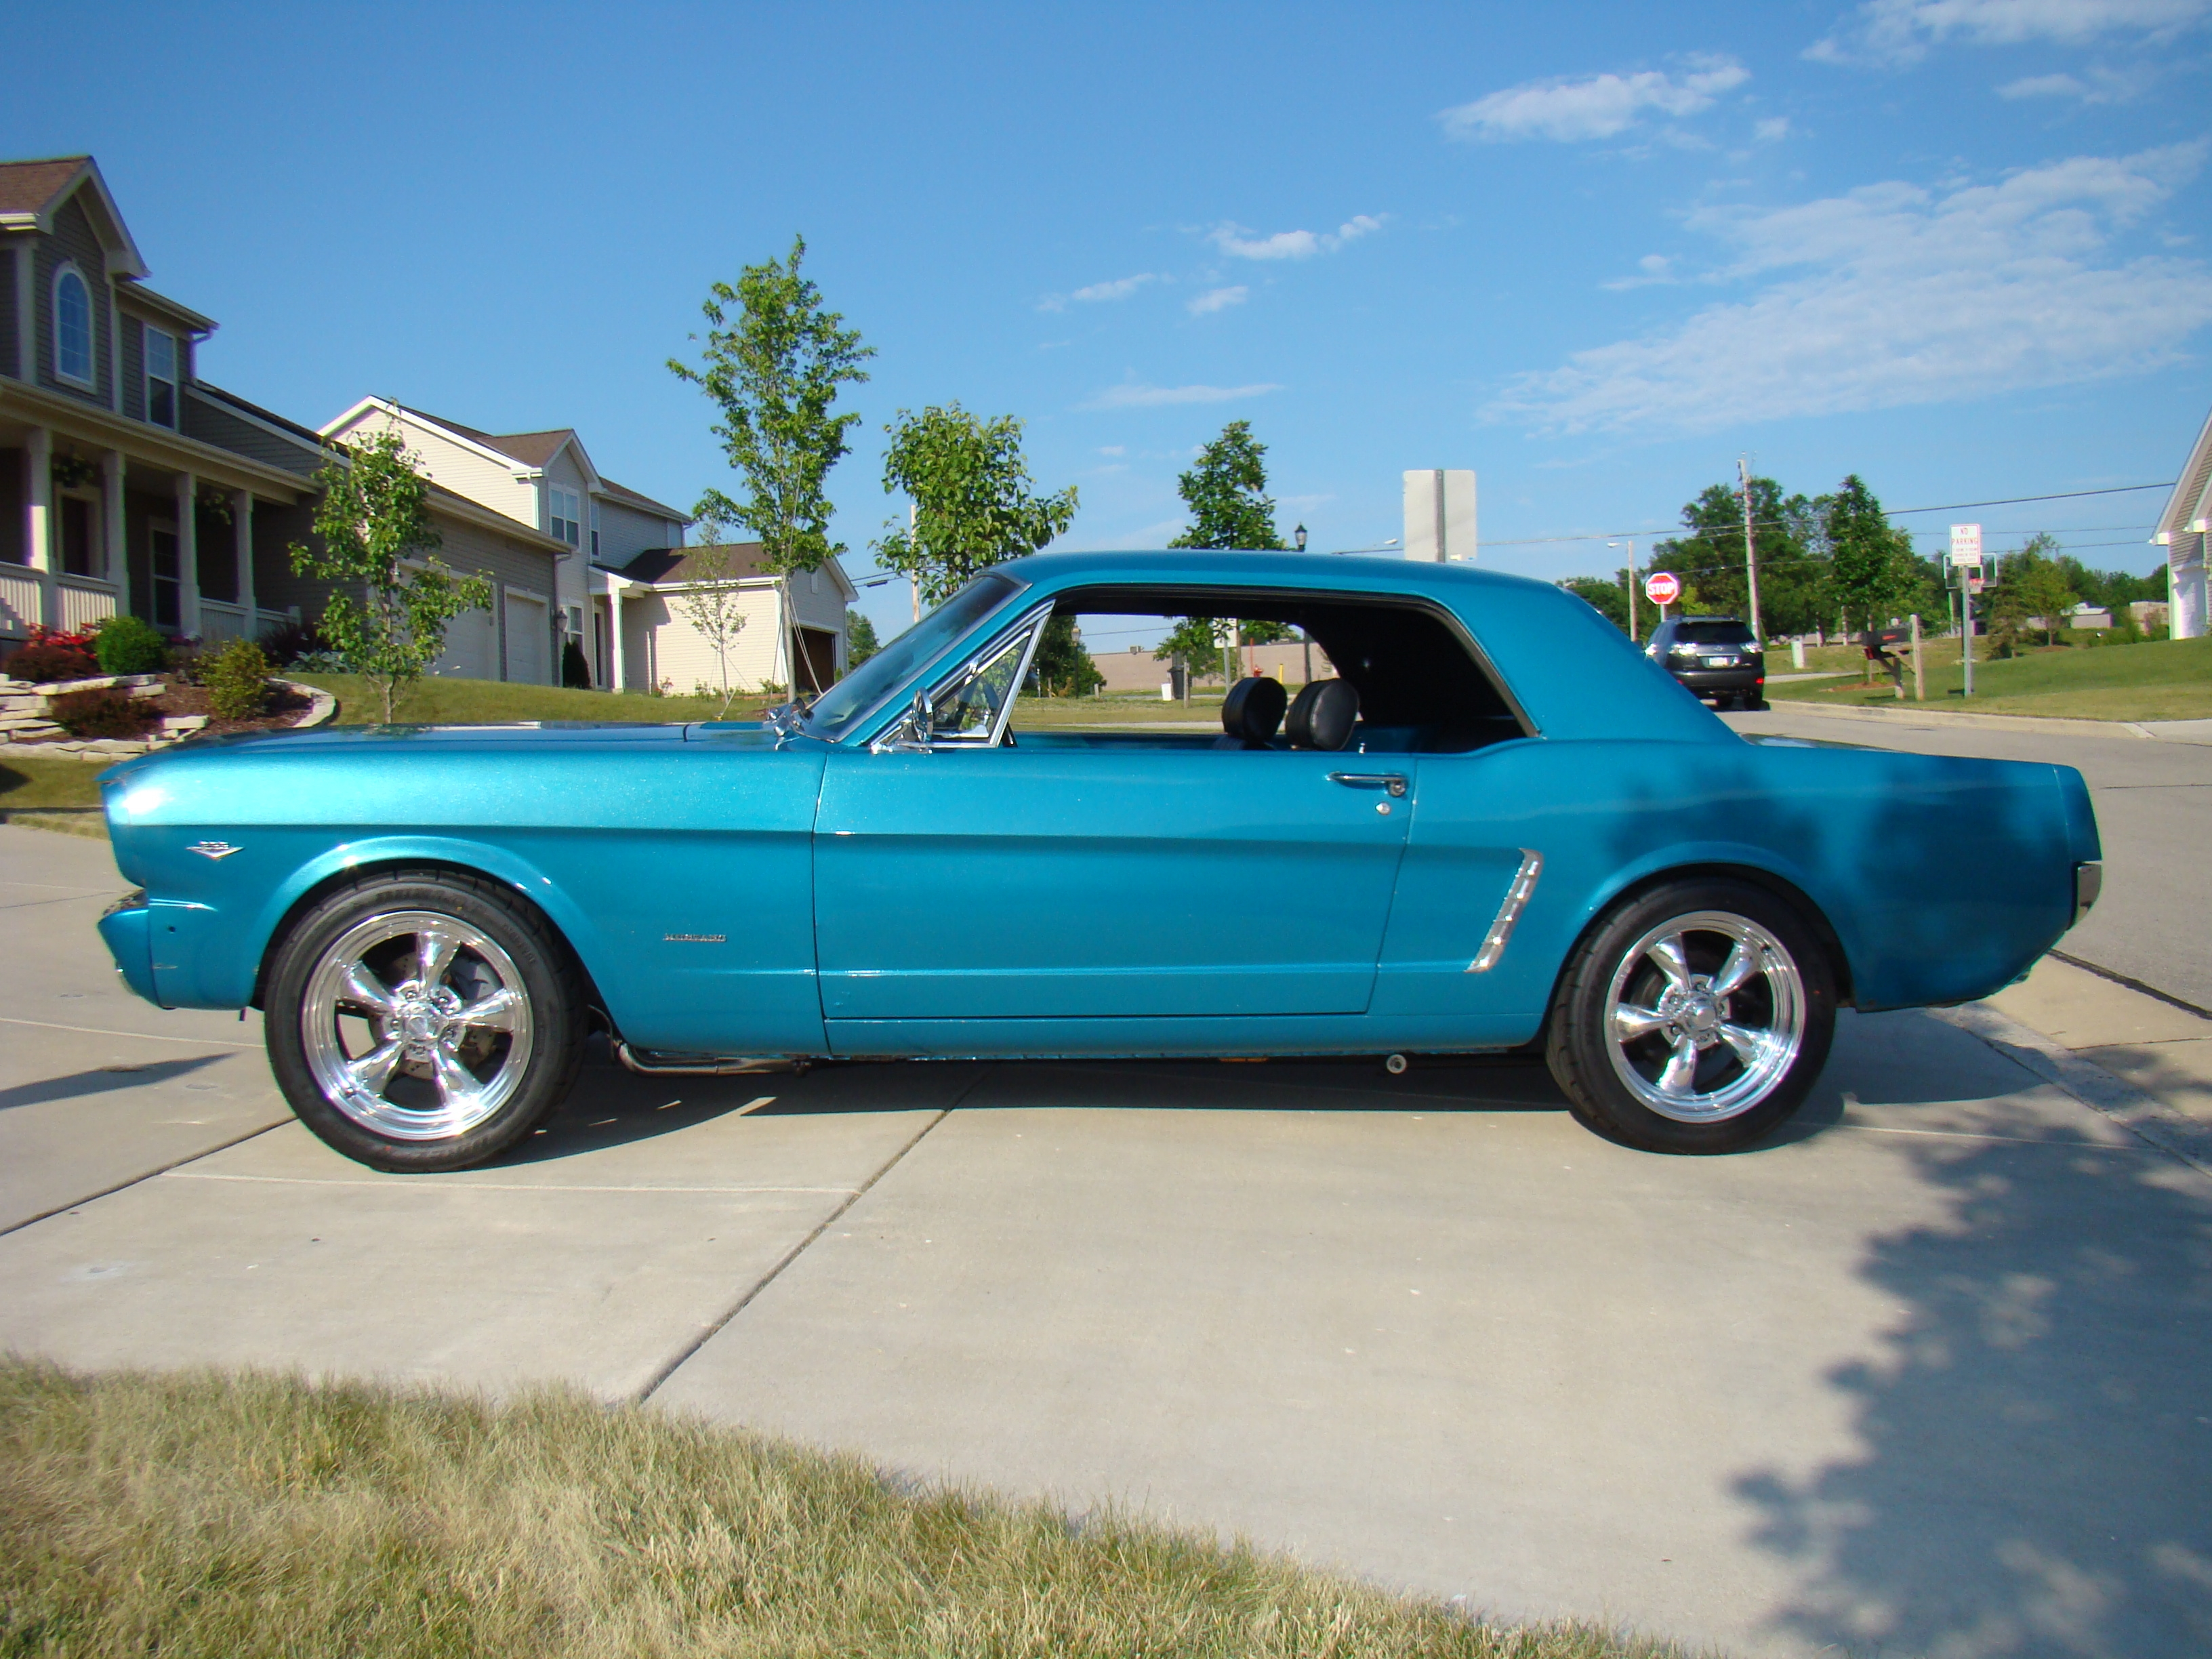 onebad289 1965 Ford Mustang 7407128